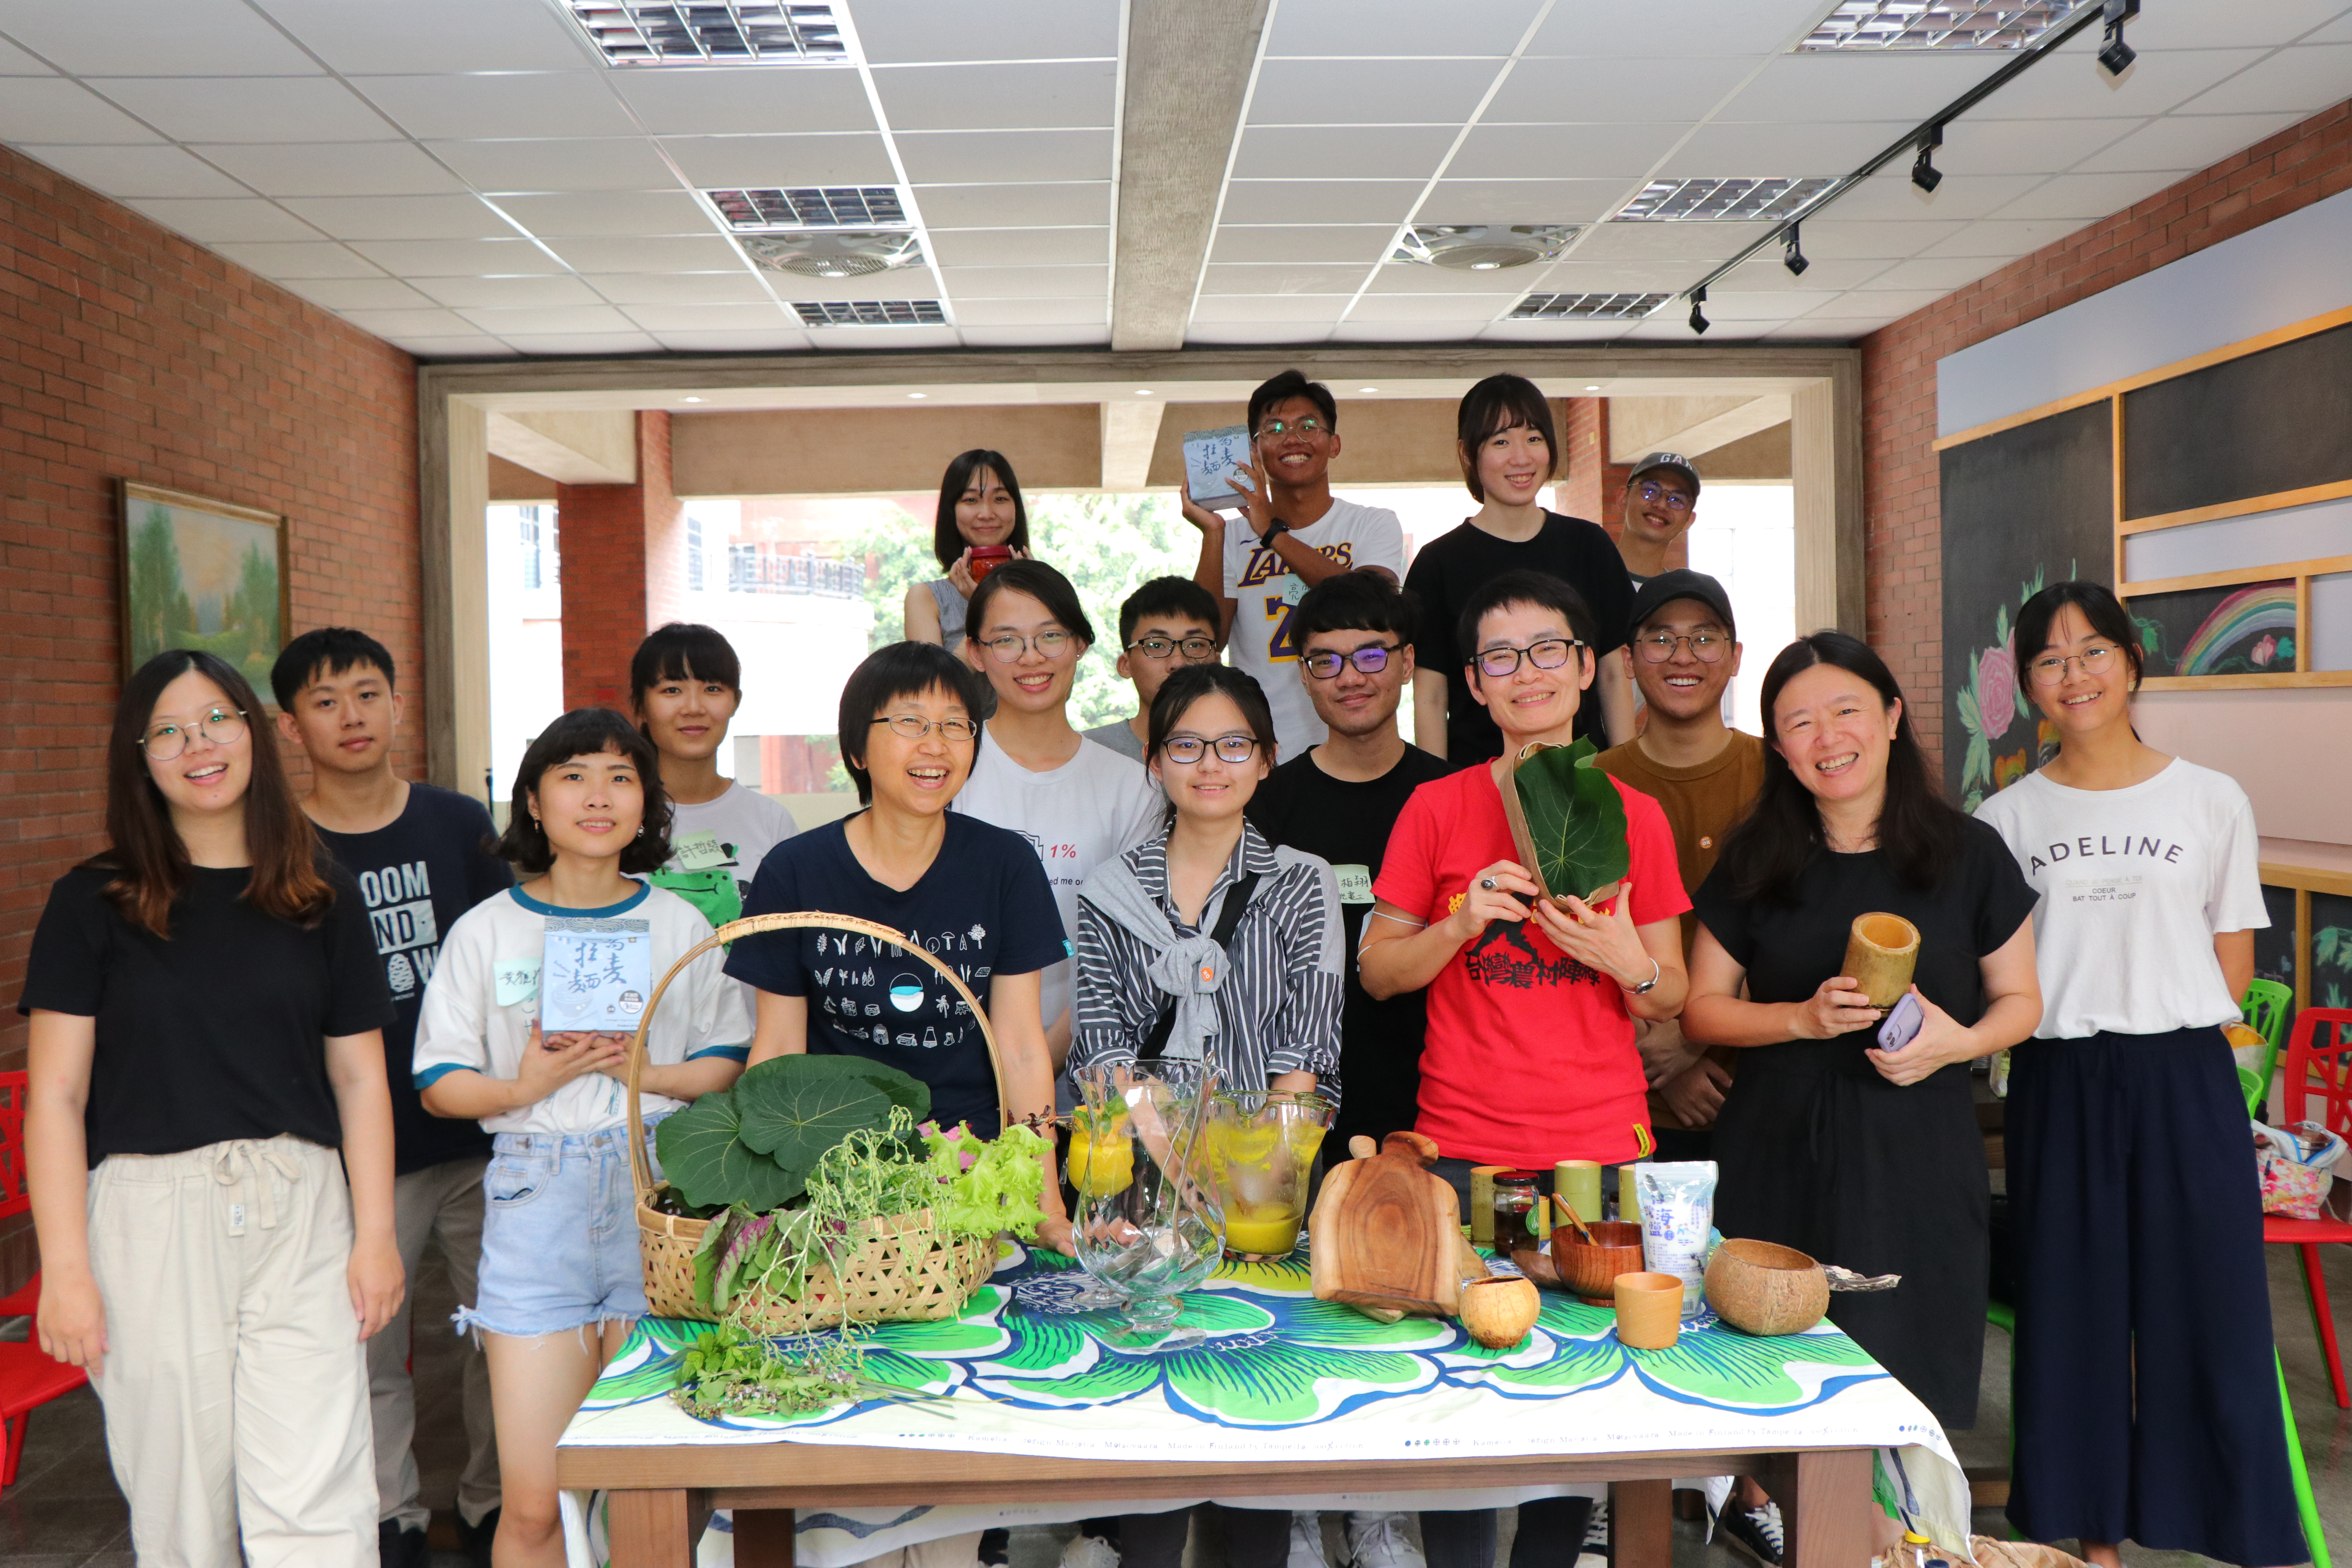 Students' self-governance on campus: students design dormitory kitchens